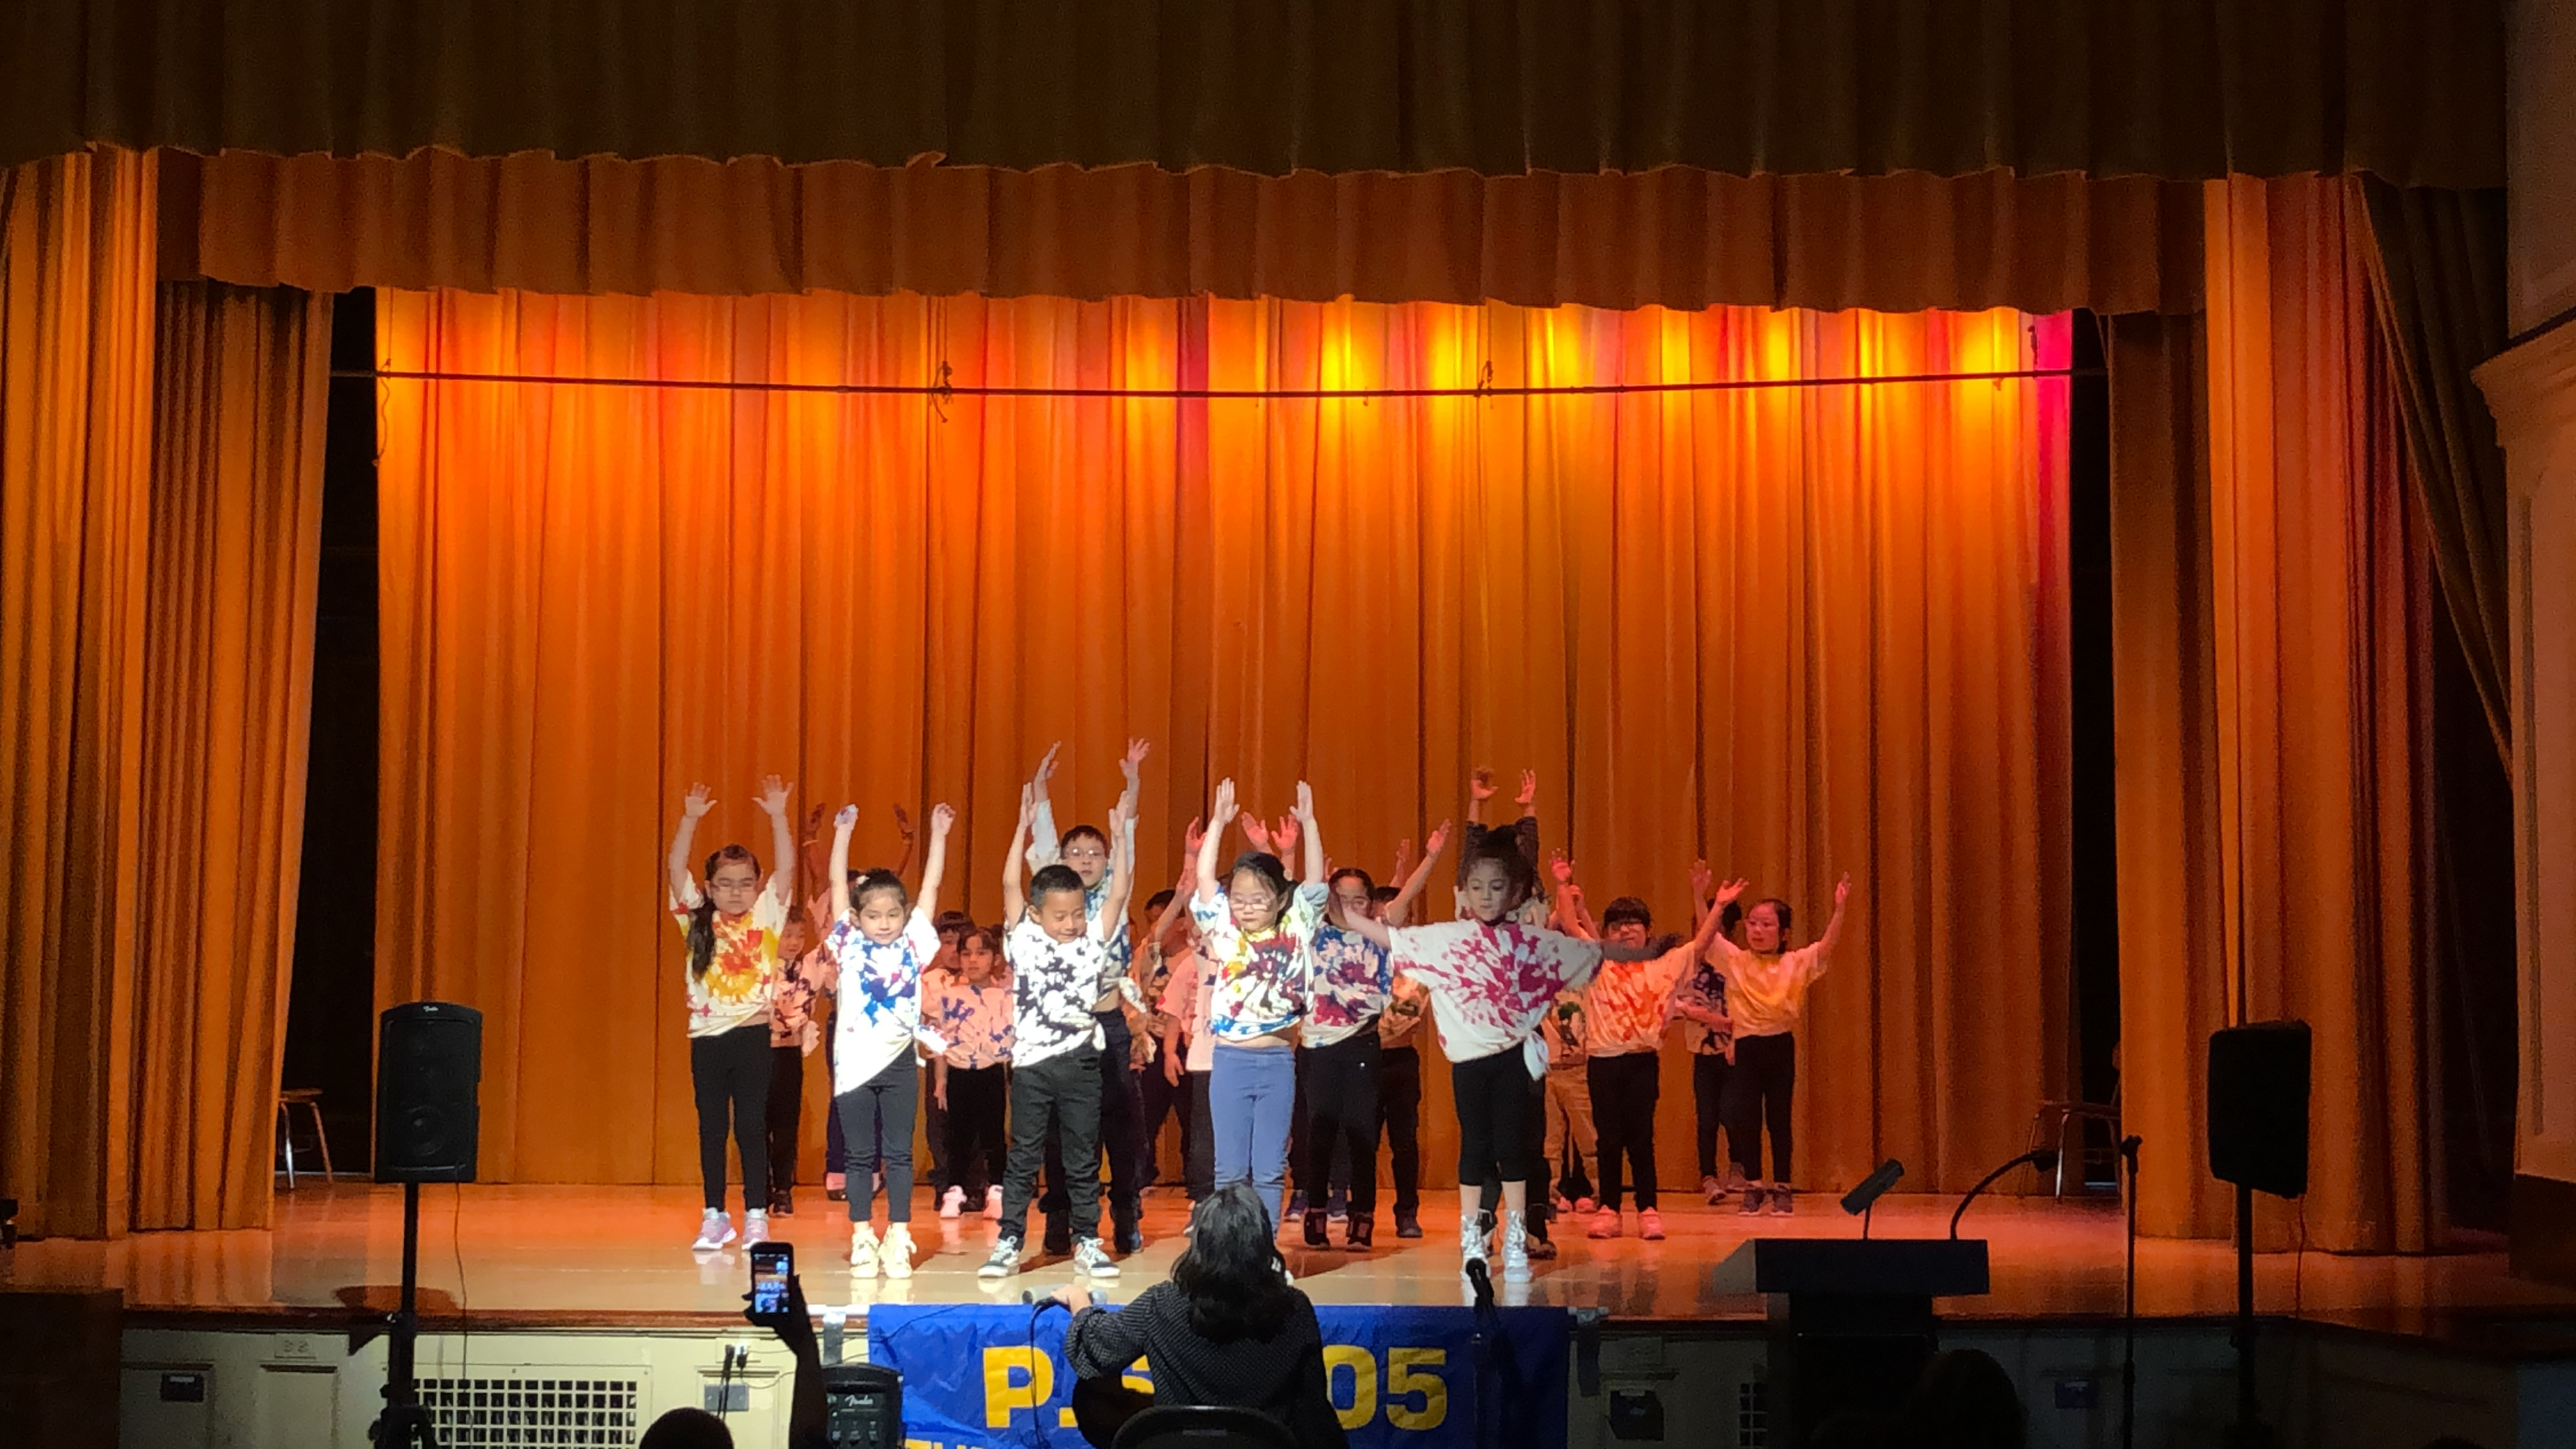 movement on stage performance